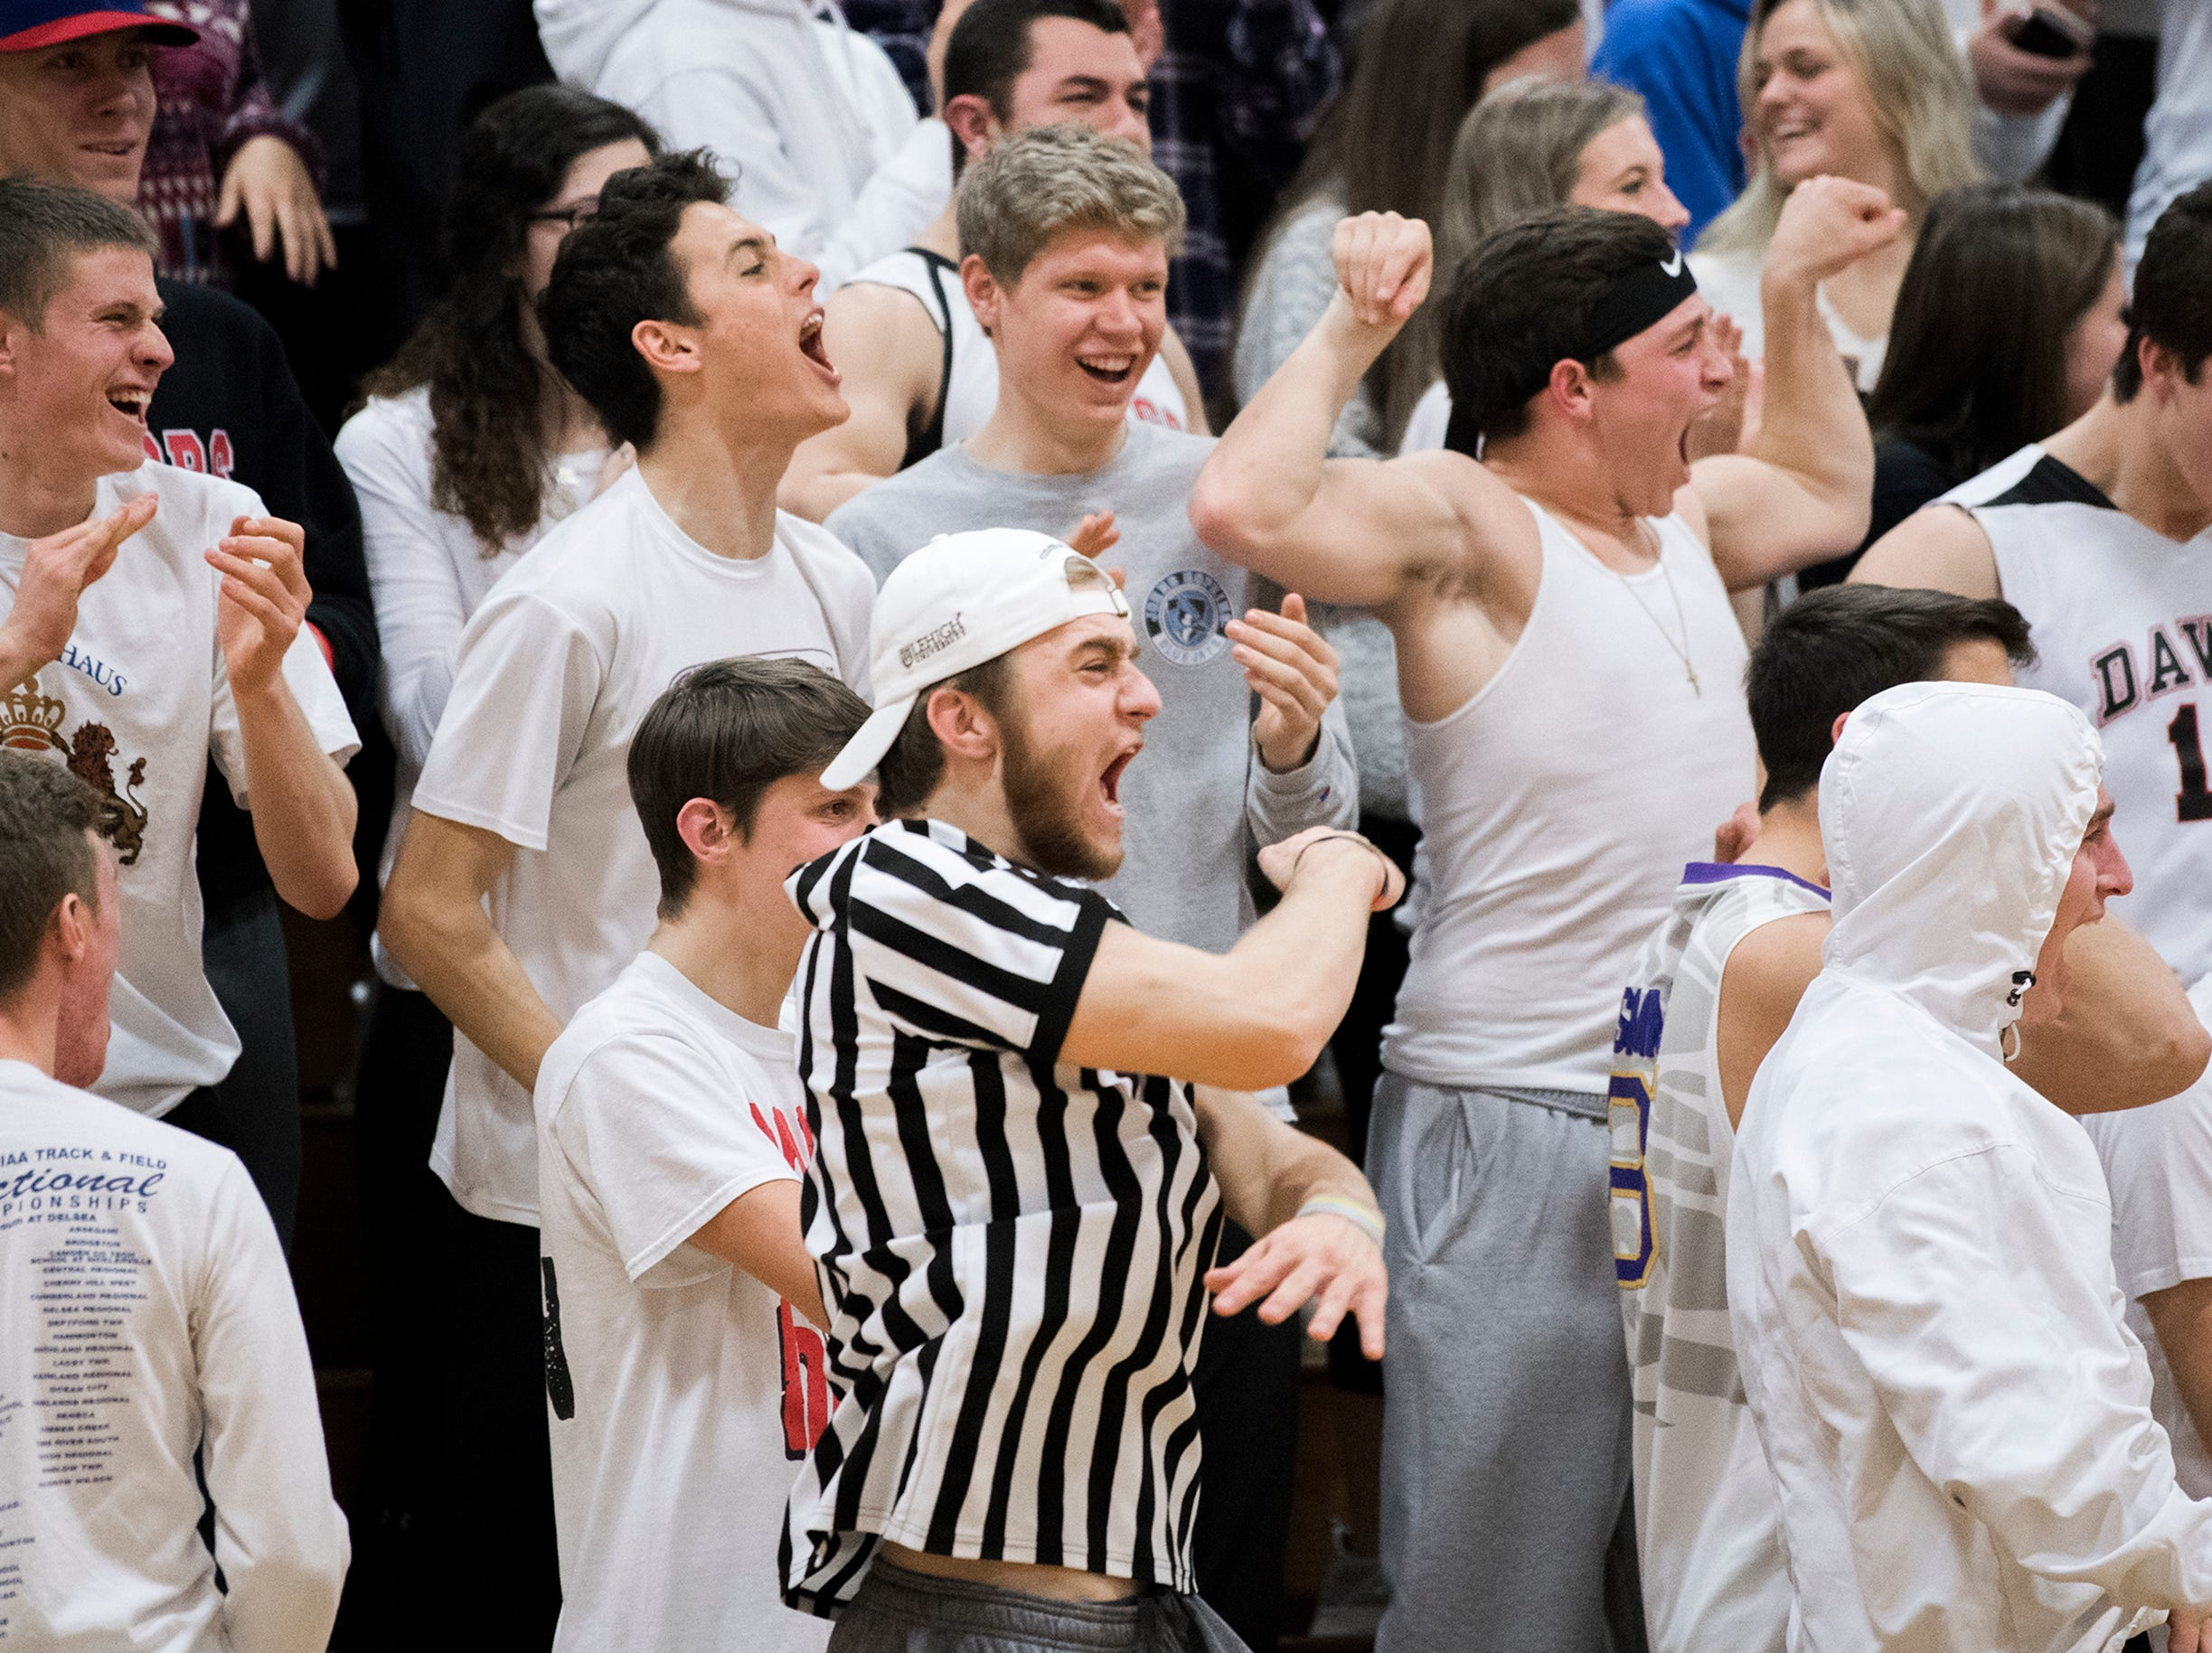 Haddonfield fans erupt following Dylan Heine's dunk Friday, March 1, 2019 against West Deptford at Cherry Hill High School East in Cherry Hill, N.J. Haddonfield won 51-30.